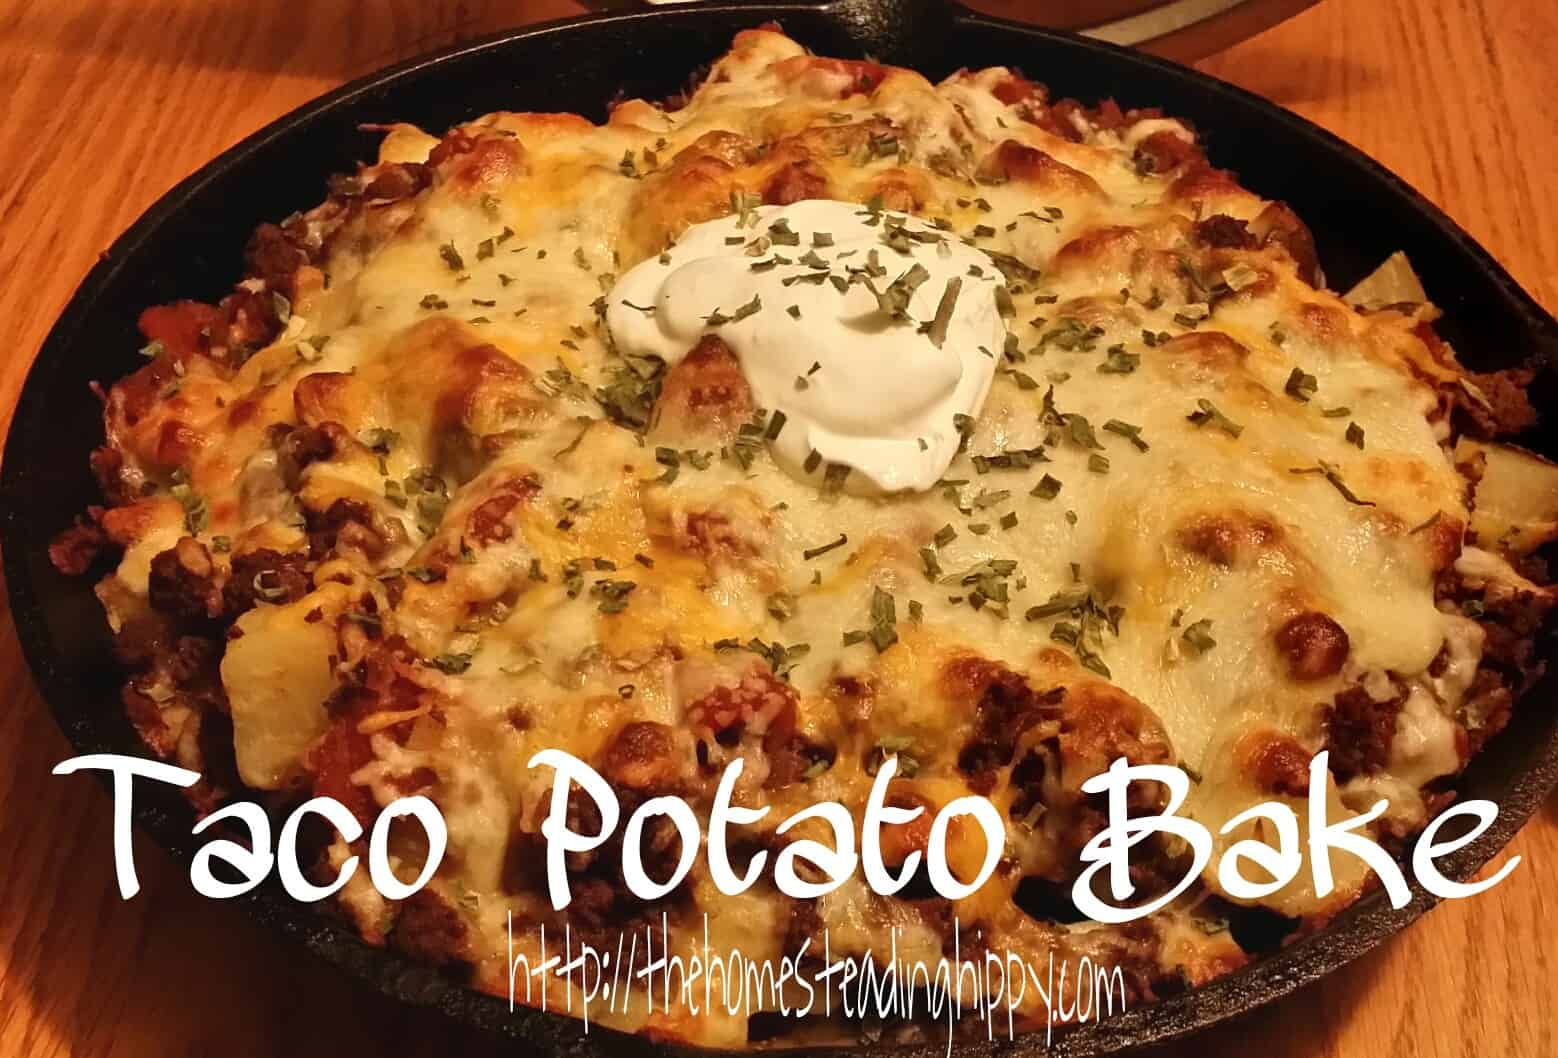 Taco Potato bake